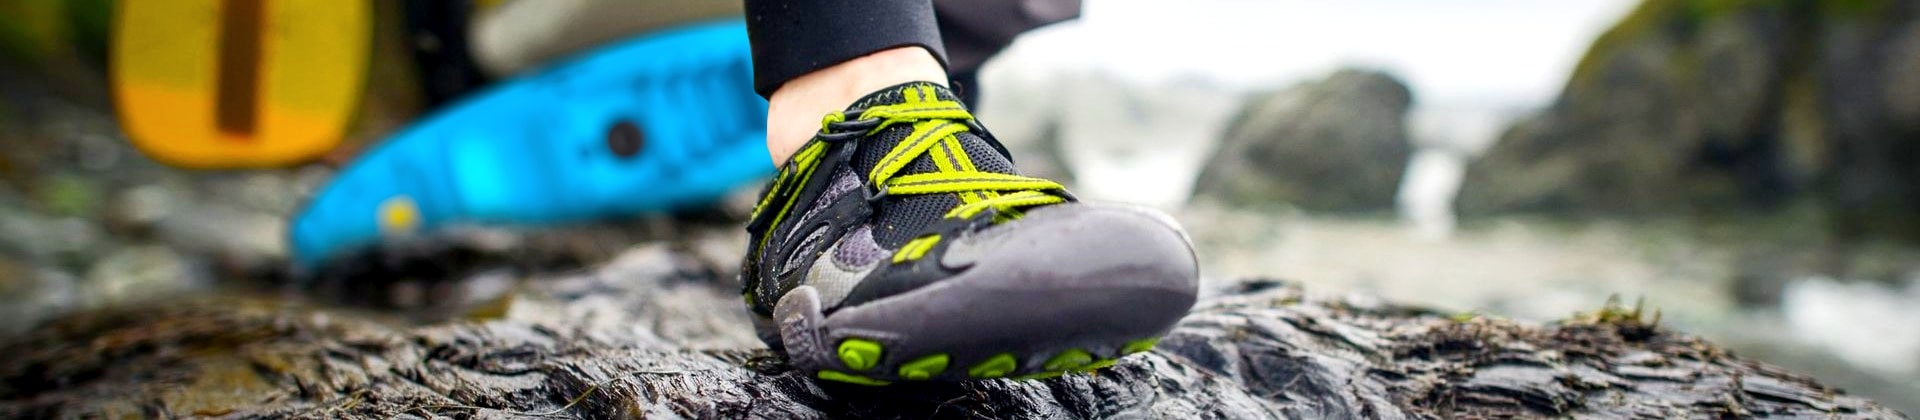 Best Shoes for Kayaking Reviewed in Detail